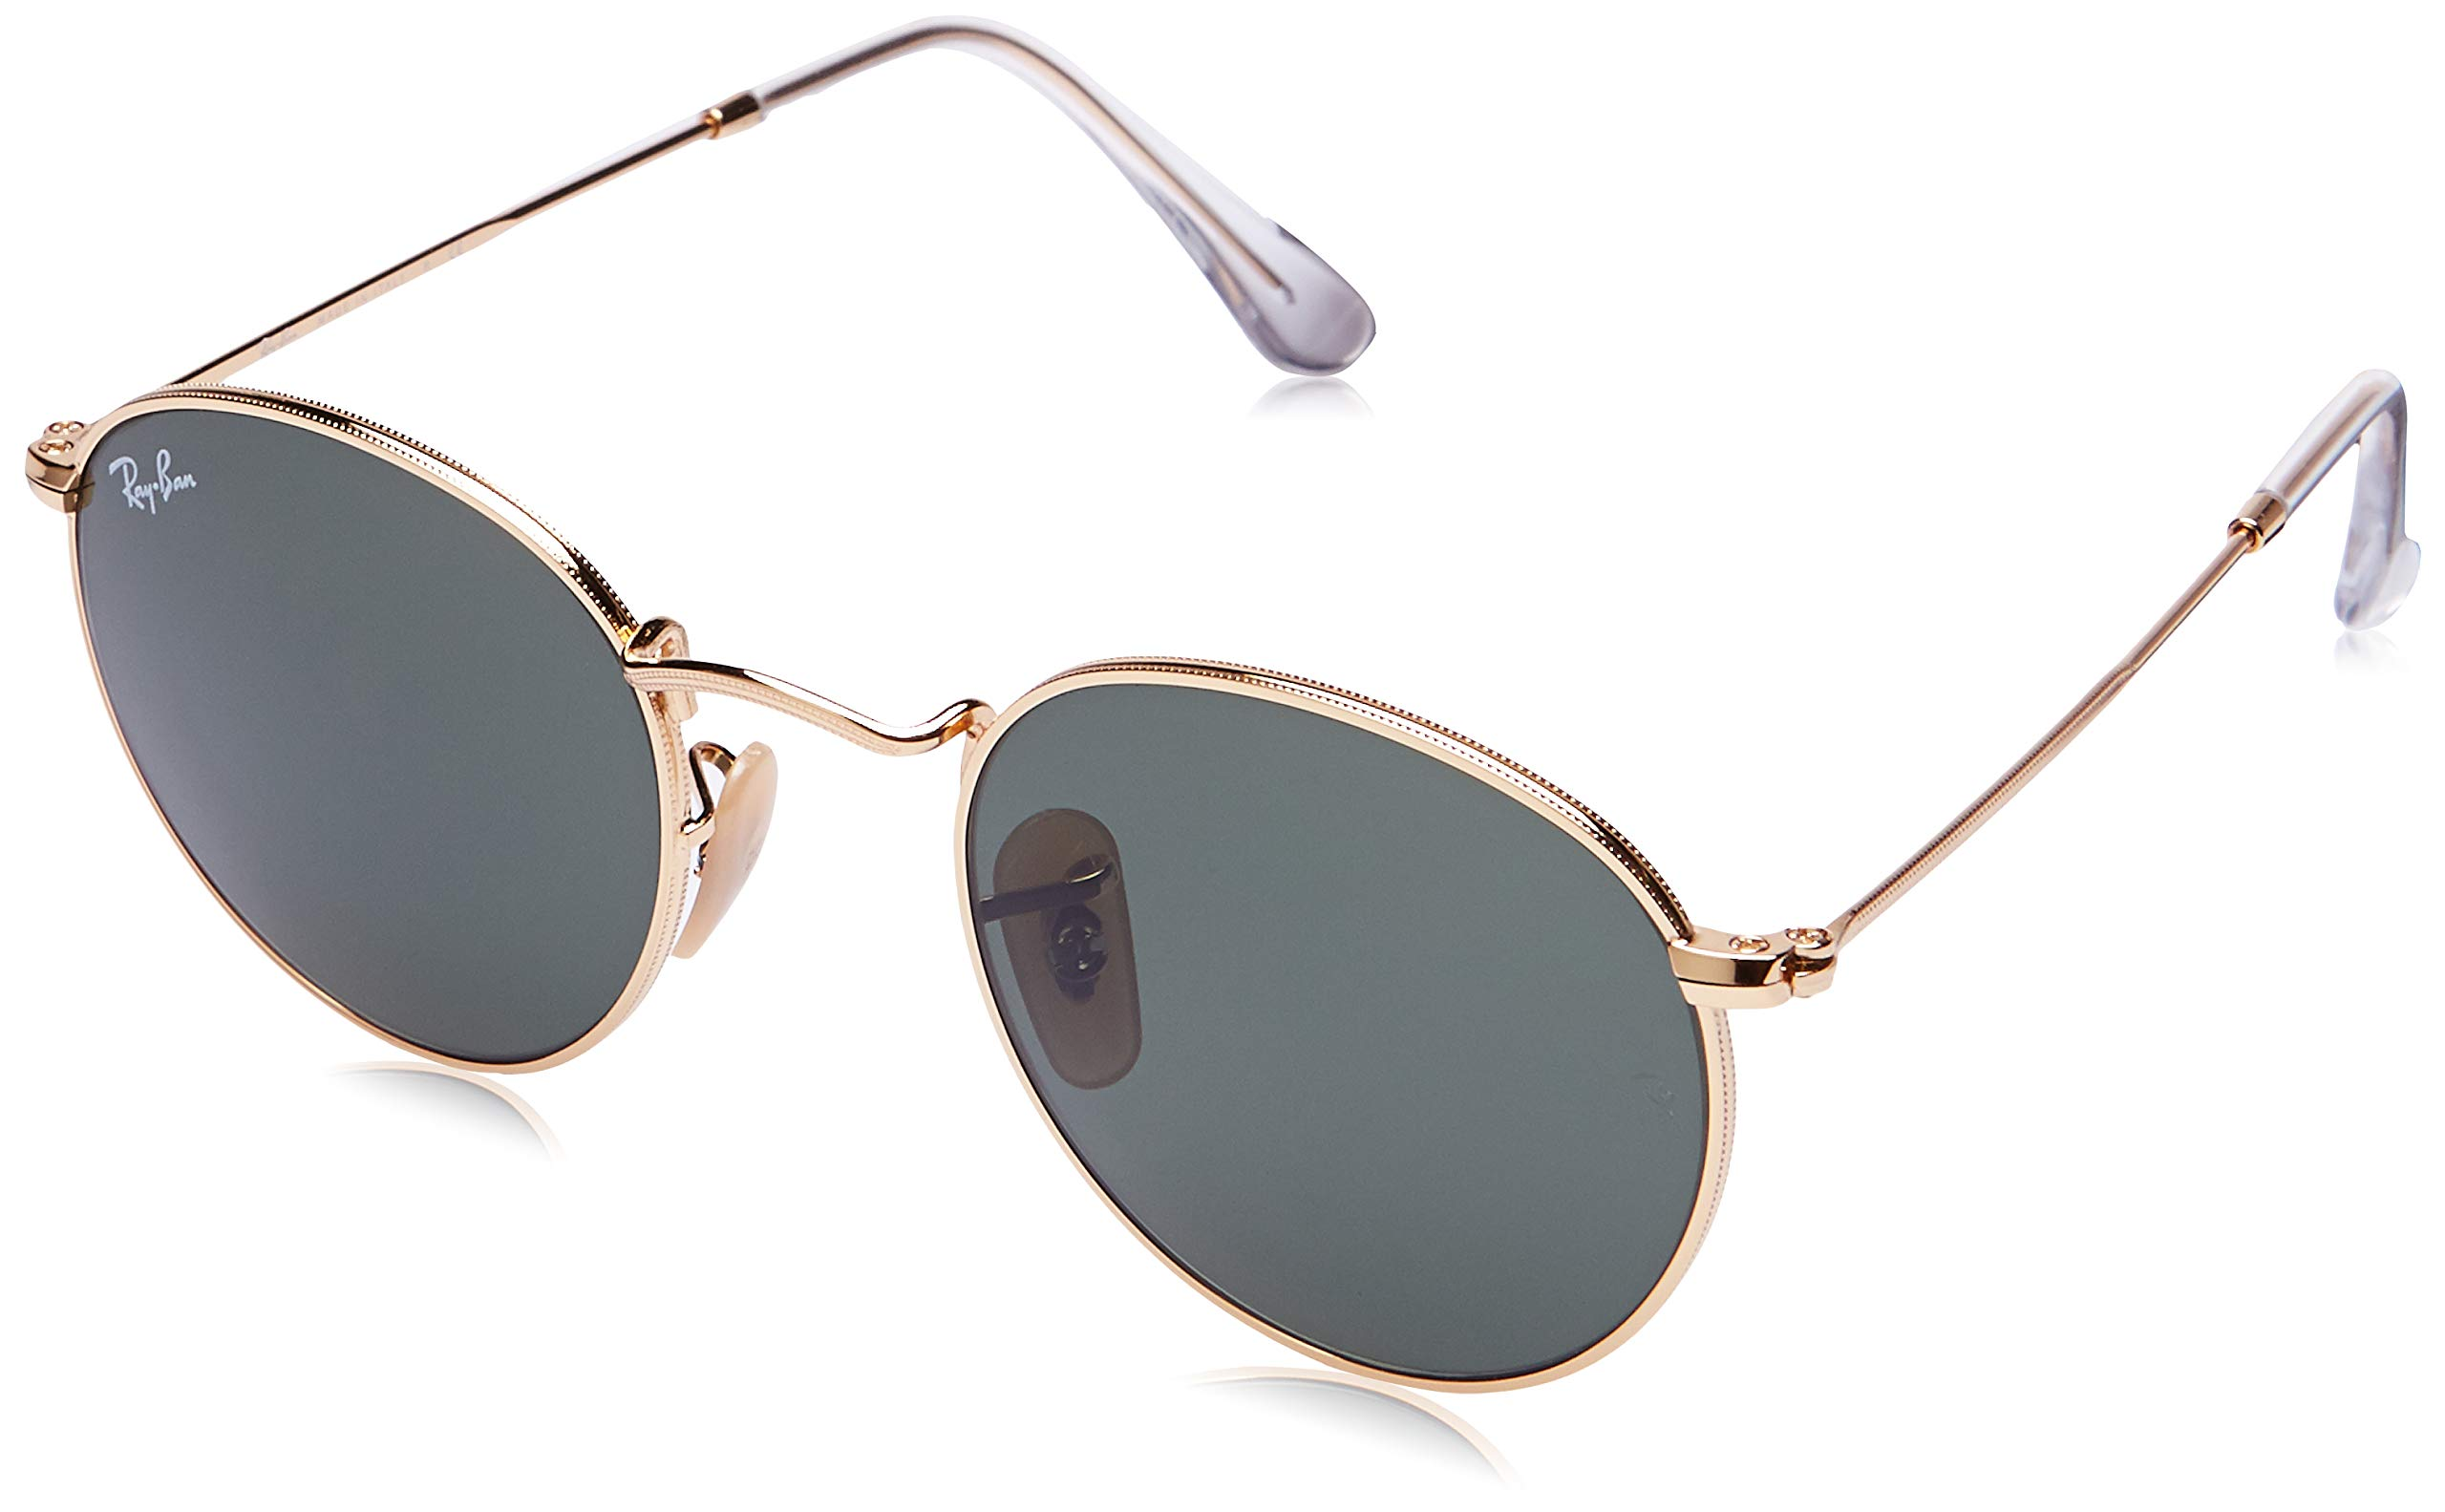 Ray-Ban RB3447 Round Metal Sunglasses, Gold/Green, 47 mm by Ray-Ban